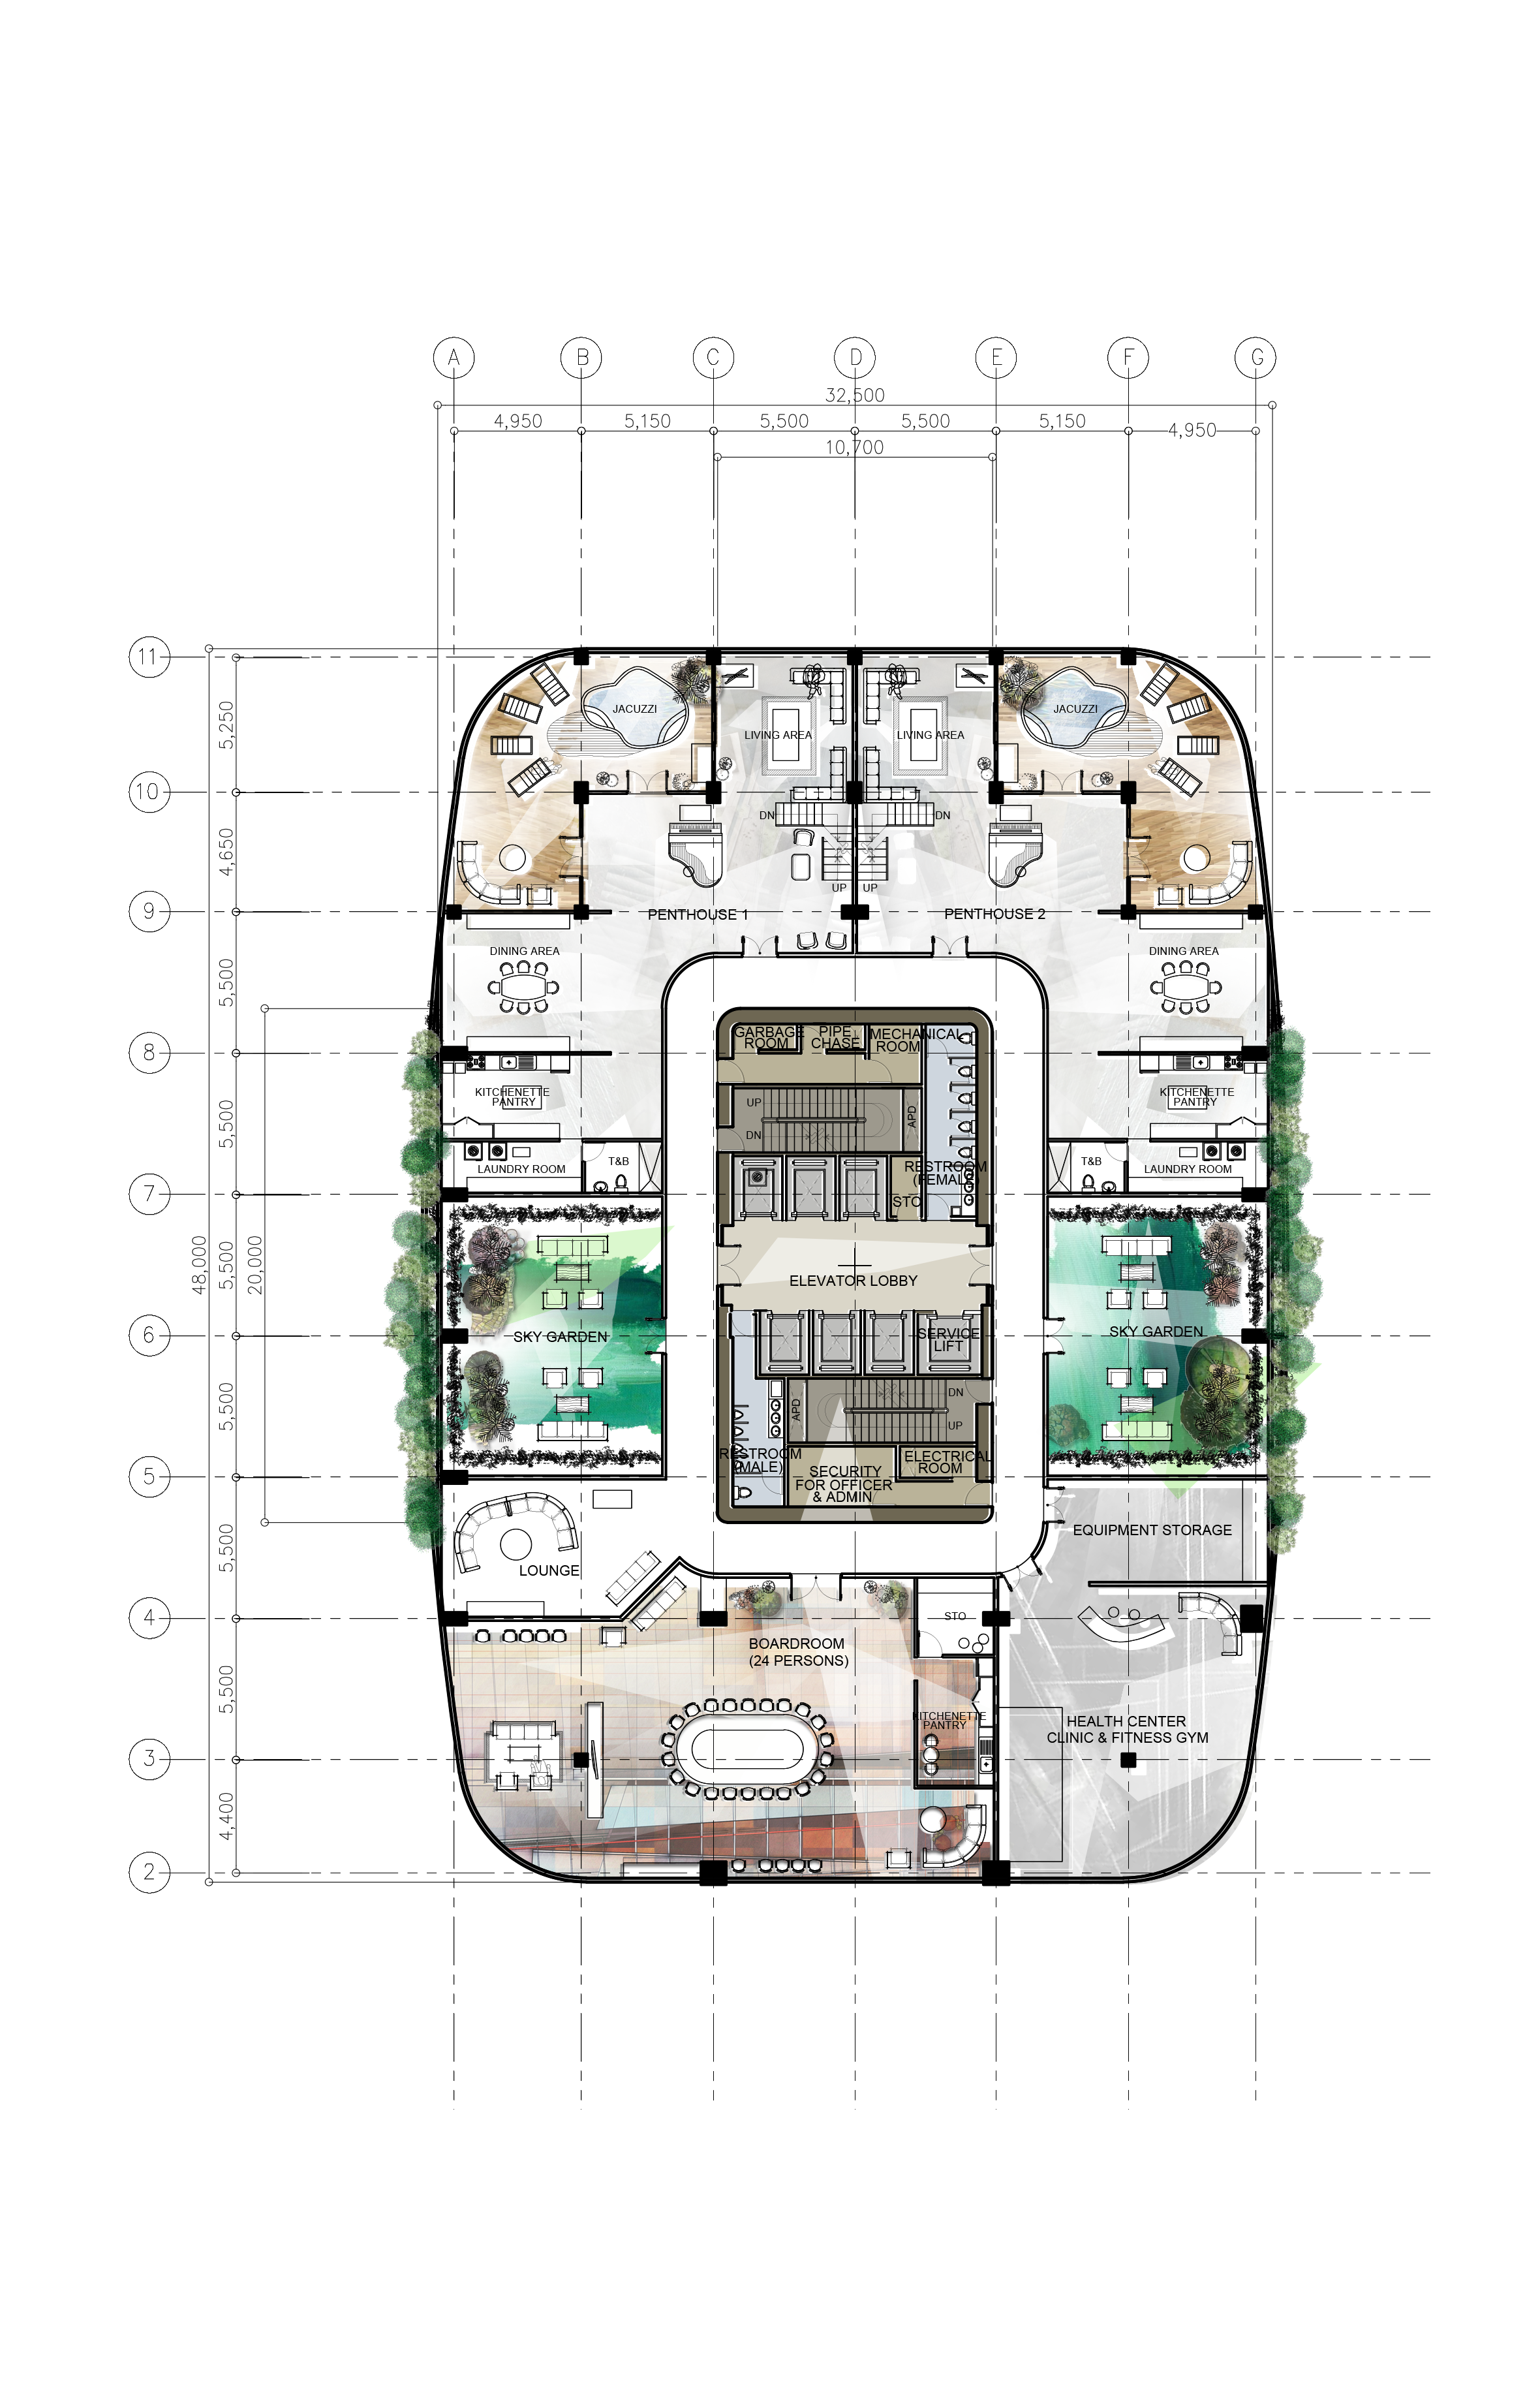 47th floor / Penthouse / Design 8 / Proposed Corporate ...